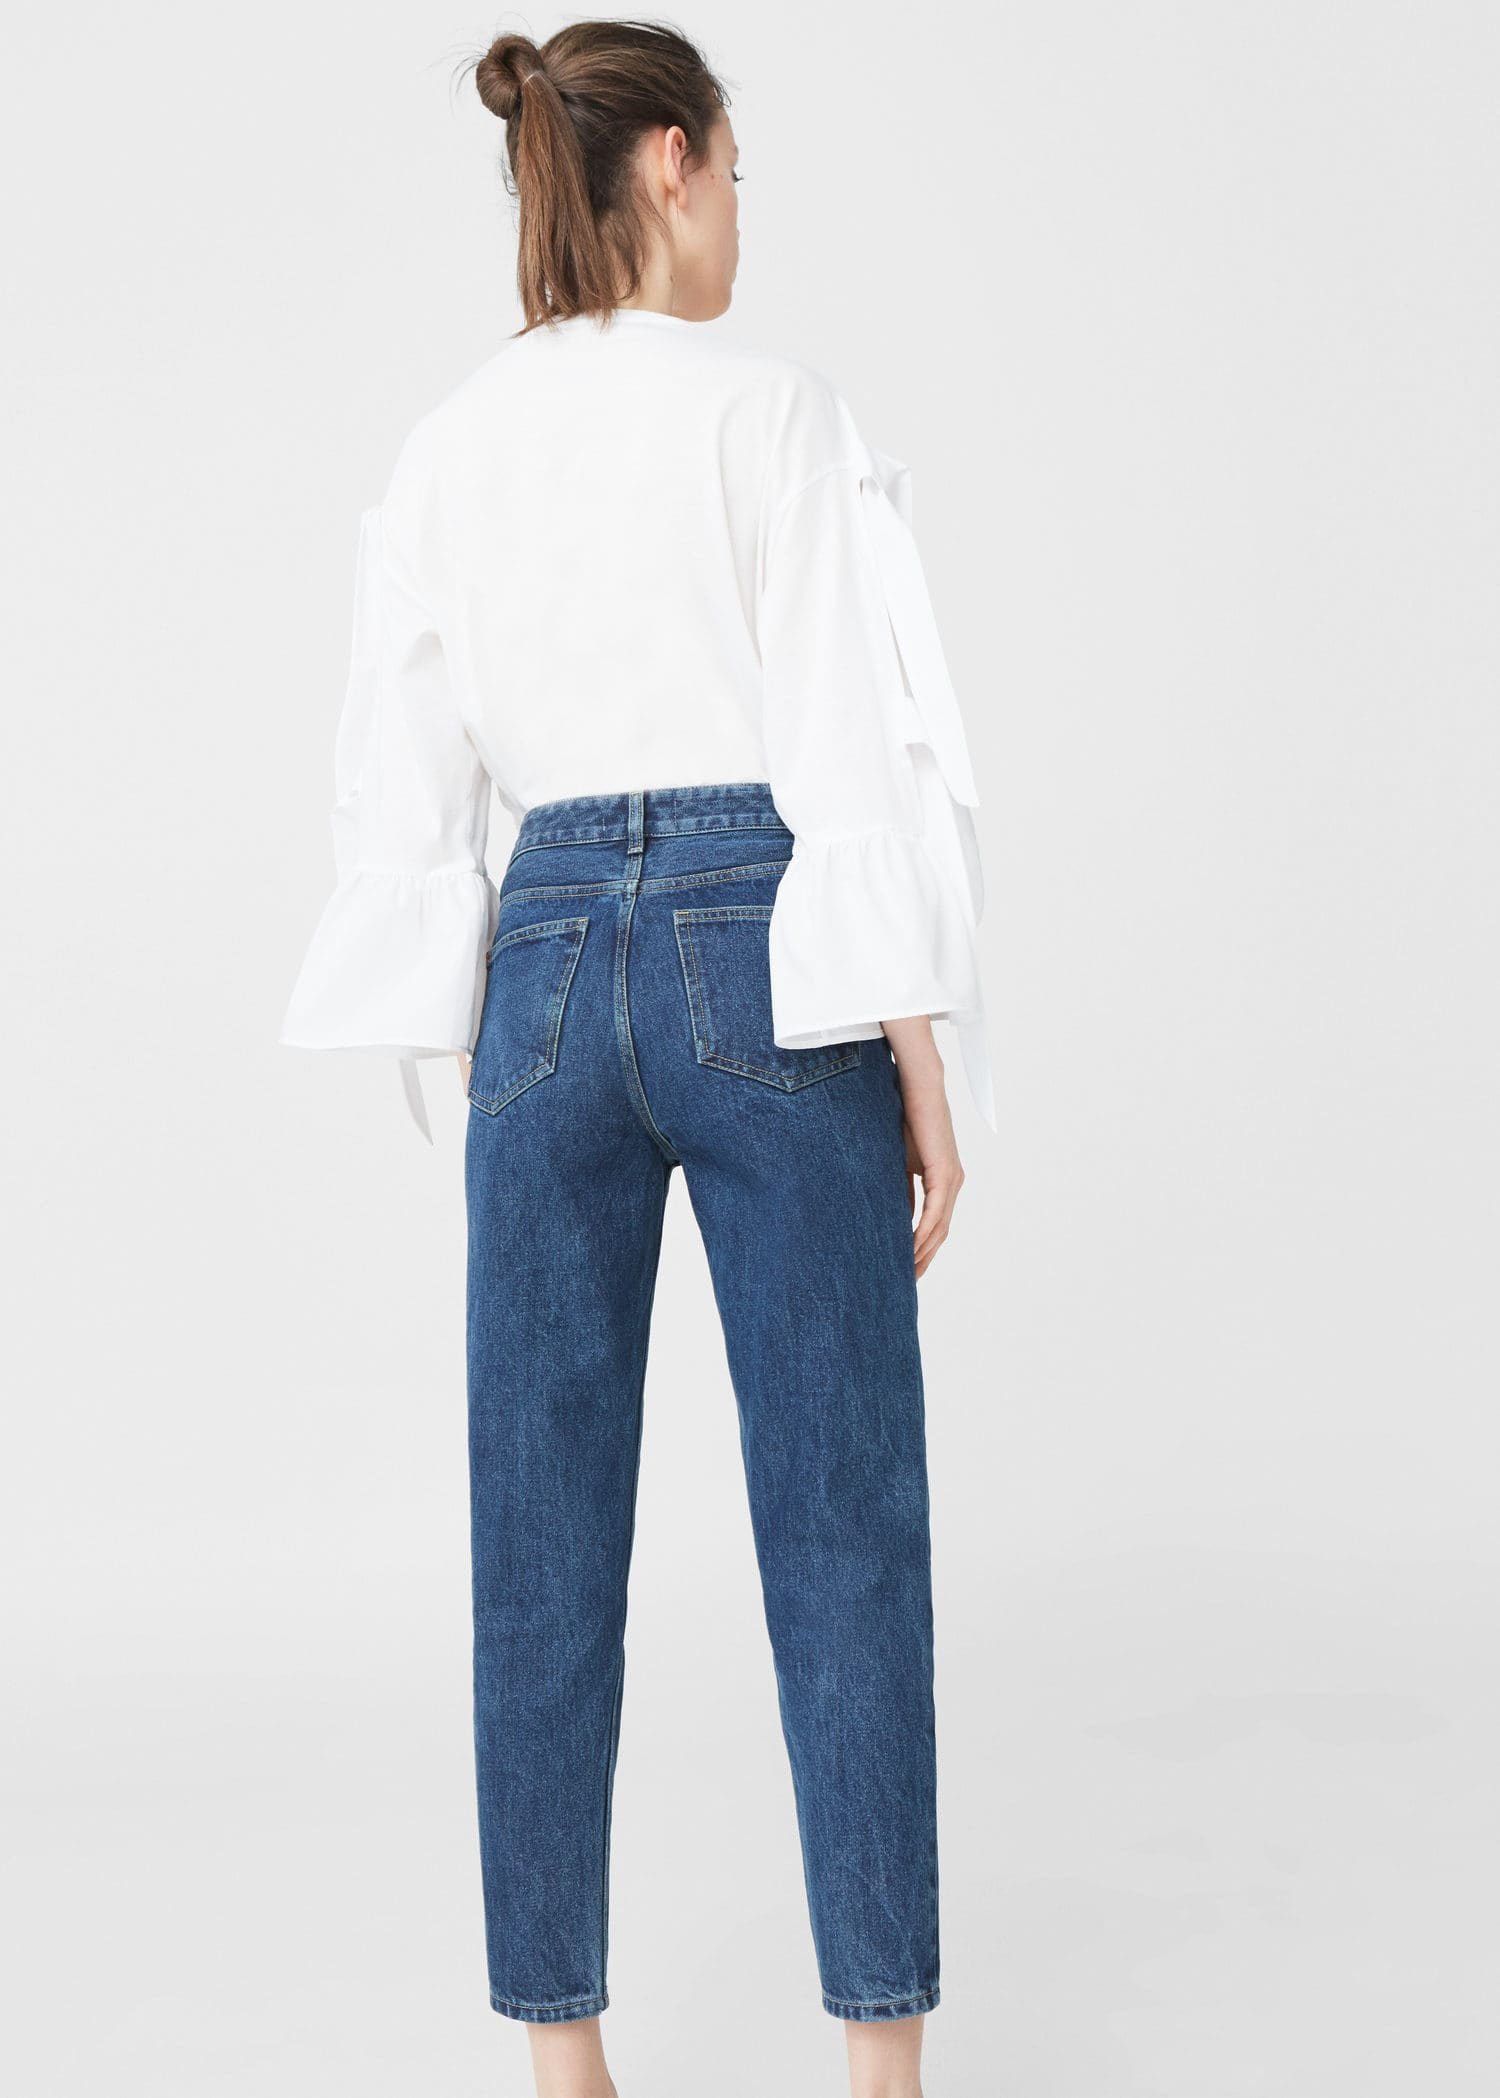 Relaxed fit jeans in 78 länge mom Damen | Mutter jeans